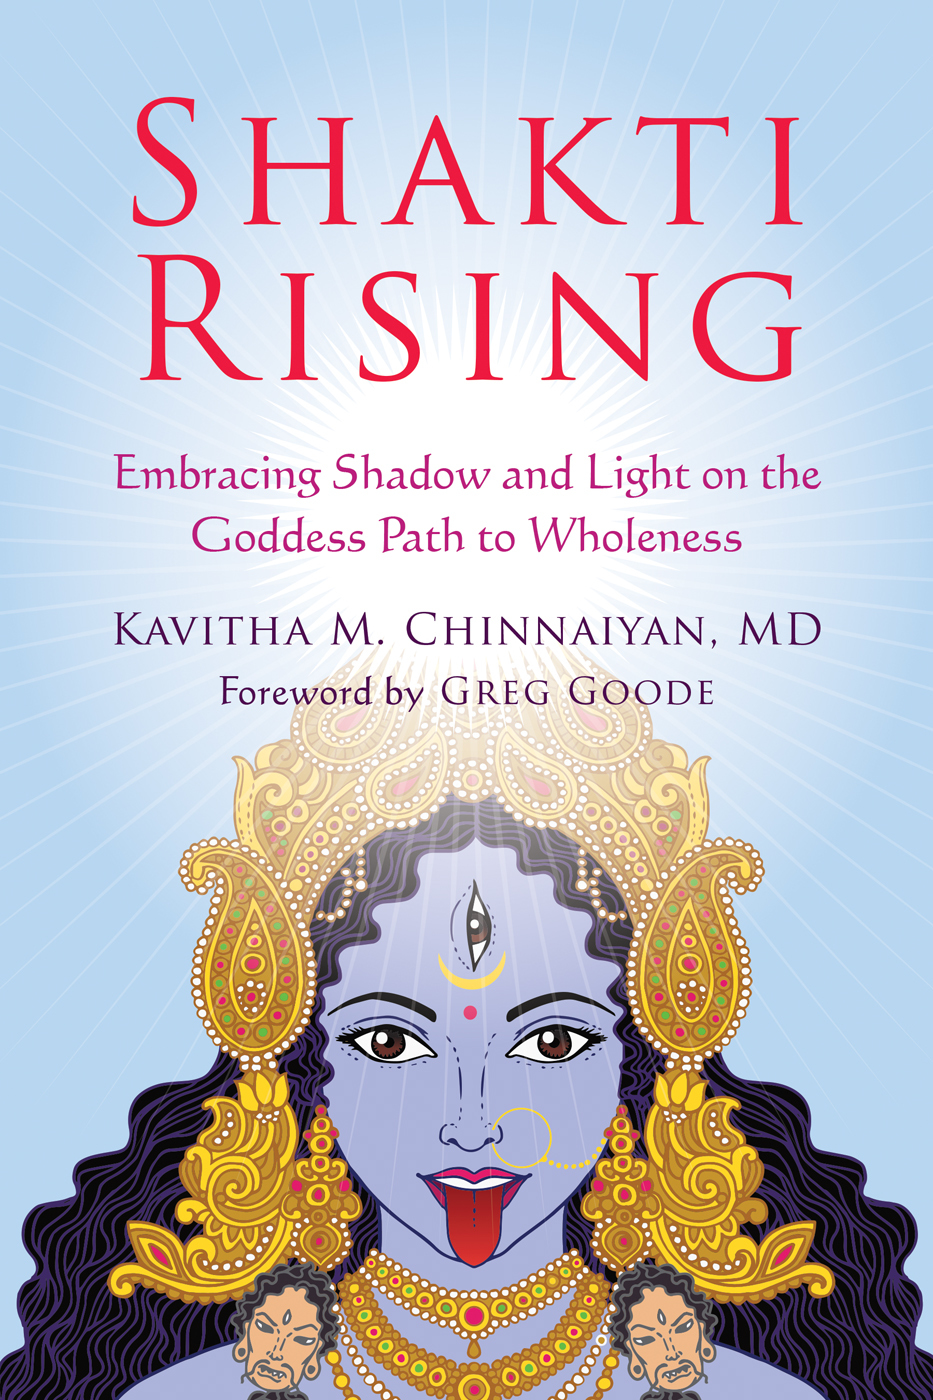 Shakti Rising Embracing Shadow and Light on the Goddess Path to Wholeness